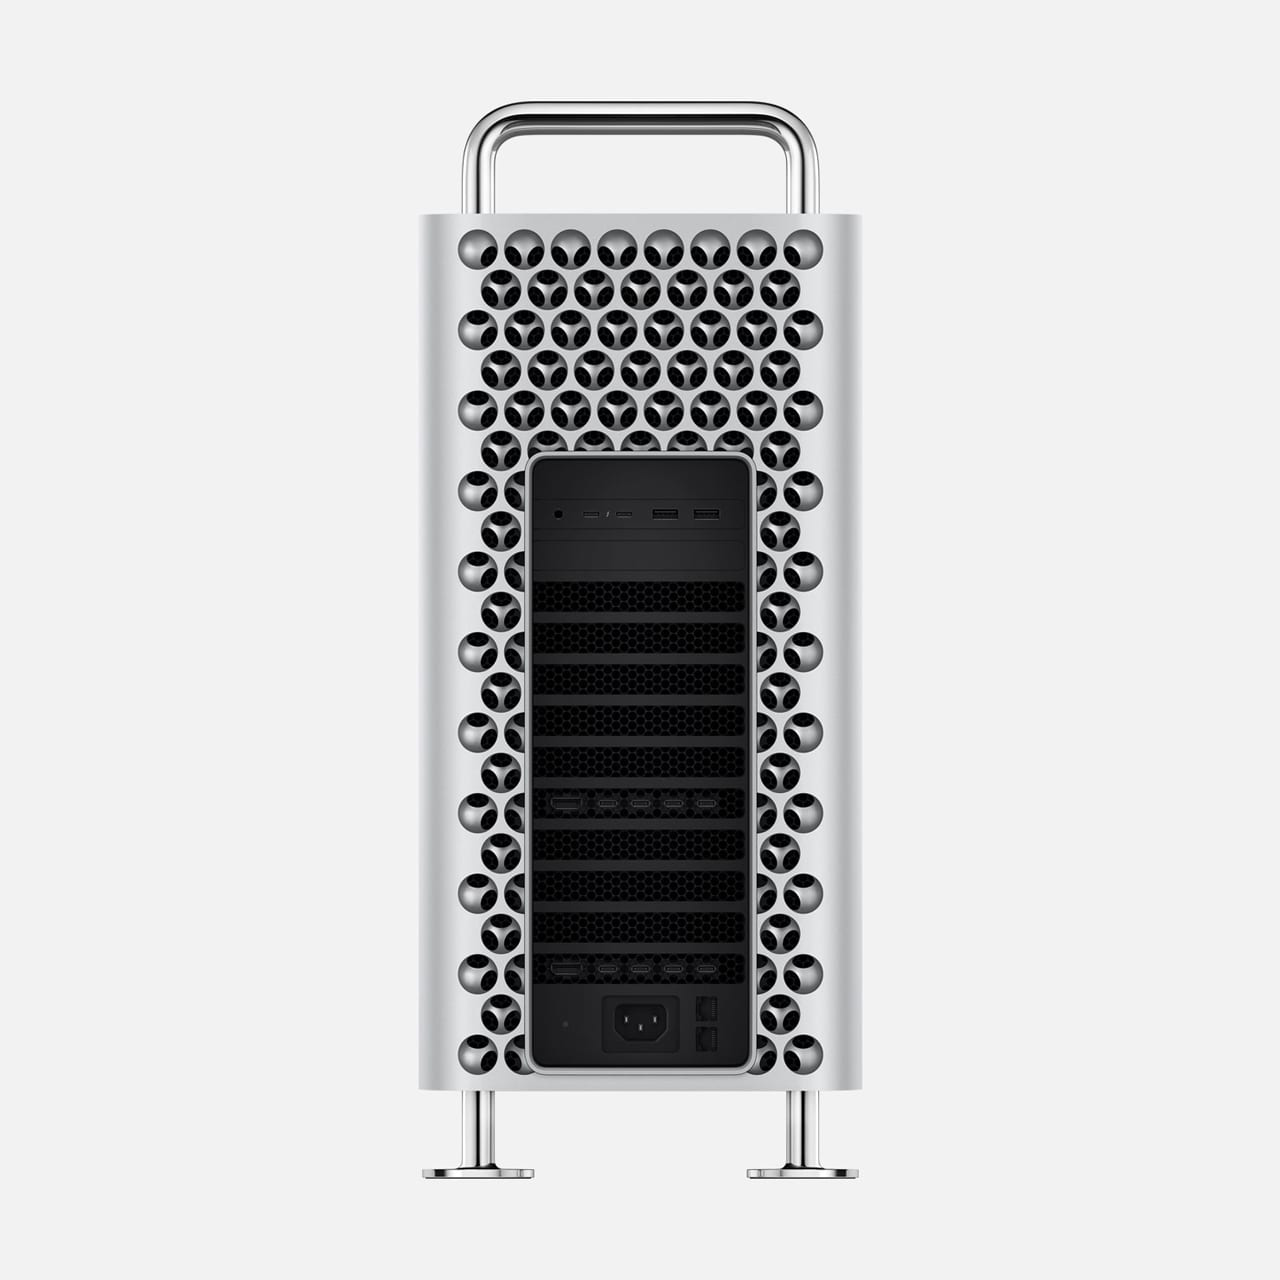 2019 Mac Pro viewed from the back side.